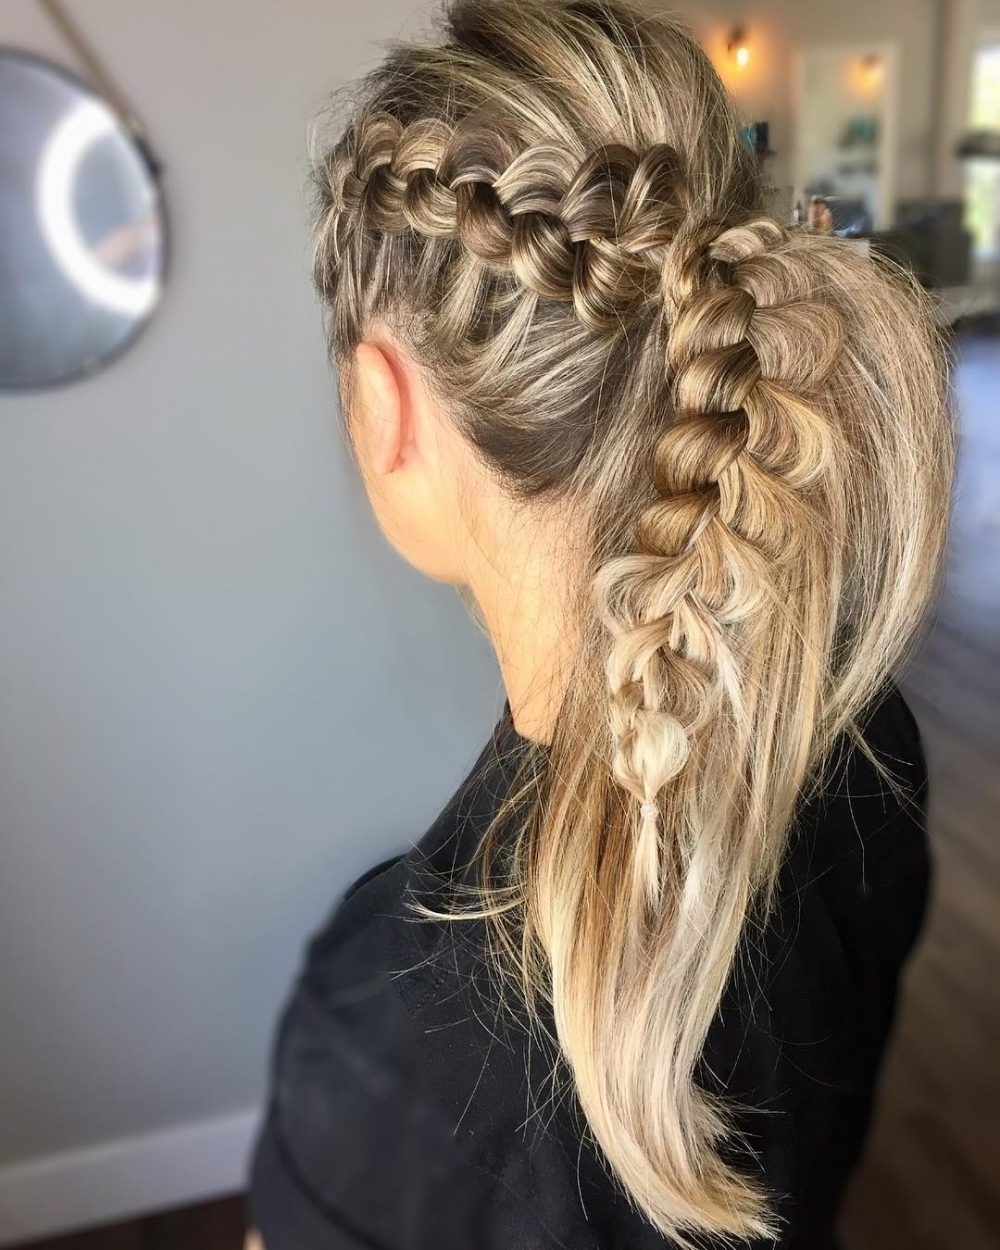 Fashionable Glossy Twisted Look Ponytail Hairstyles With Regard To 38 Ridiculously Cute Hairstyles For Long Hair (Popular In 2018) (View 5 of 20)